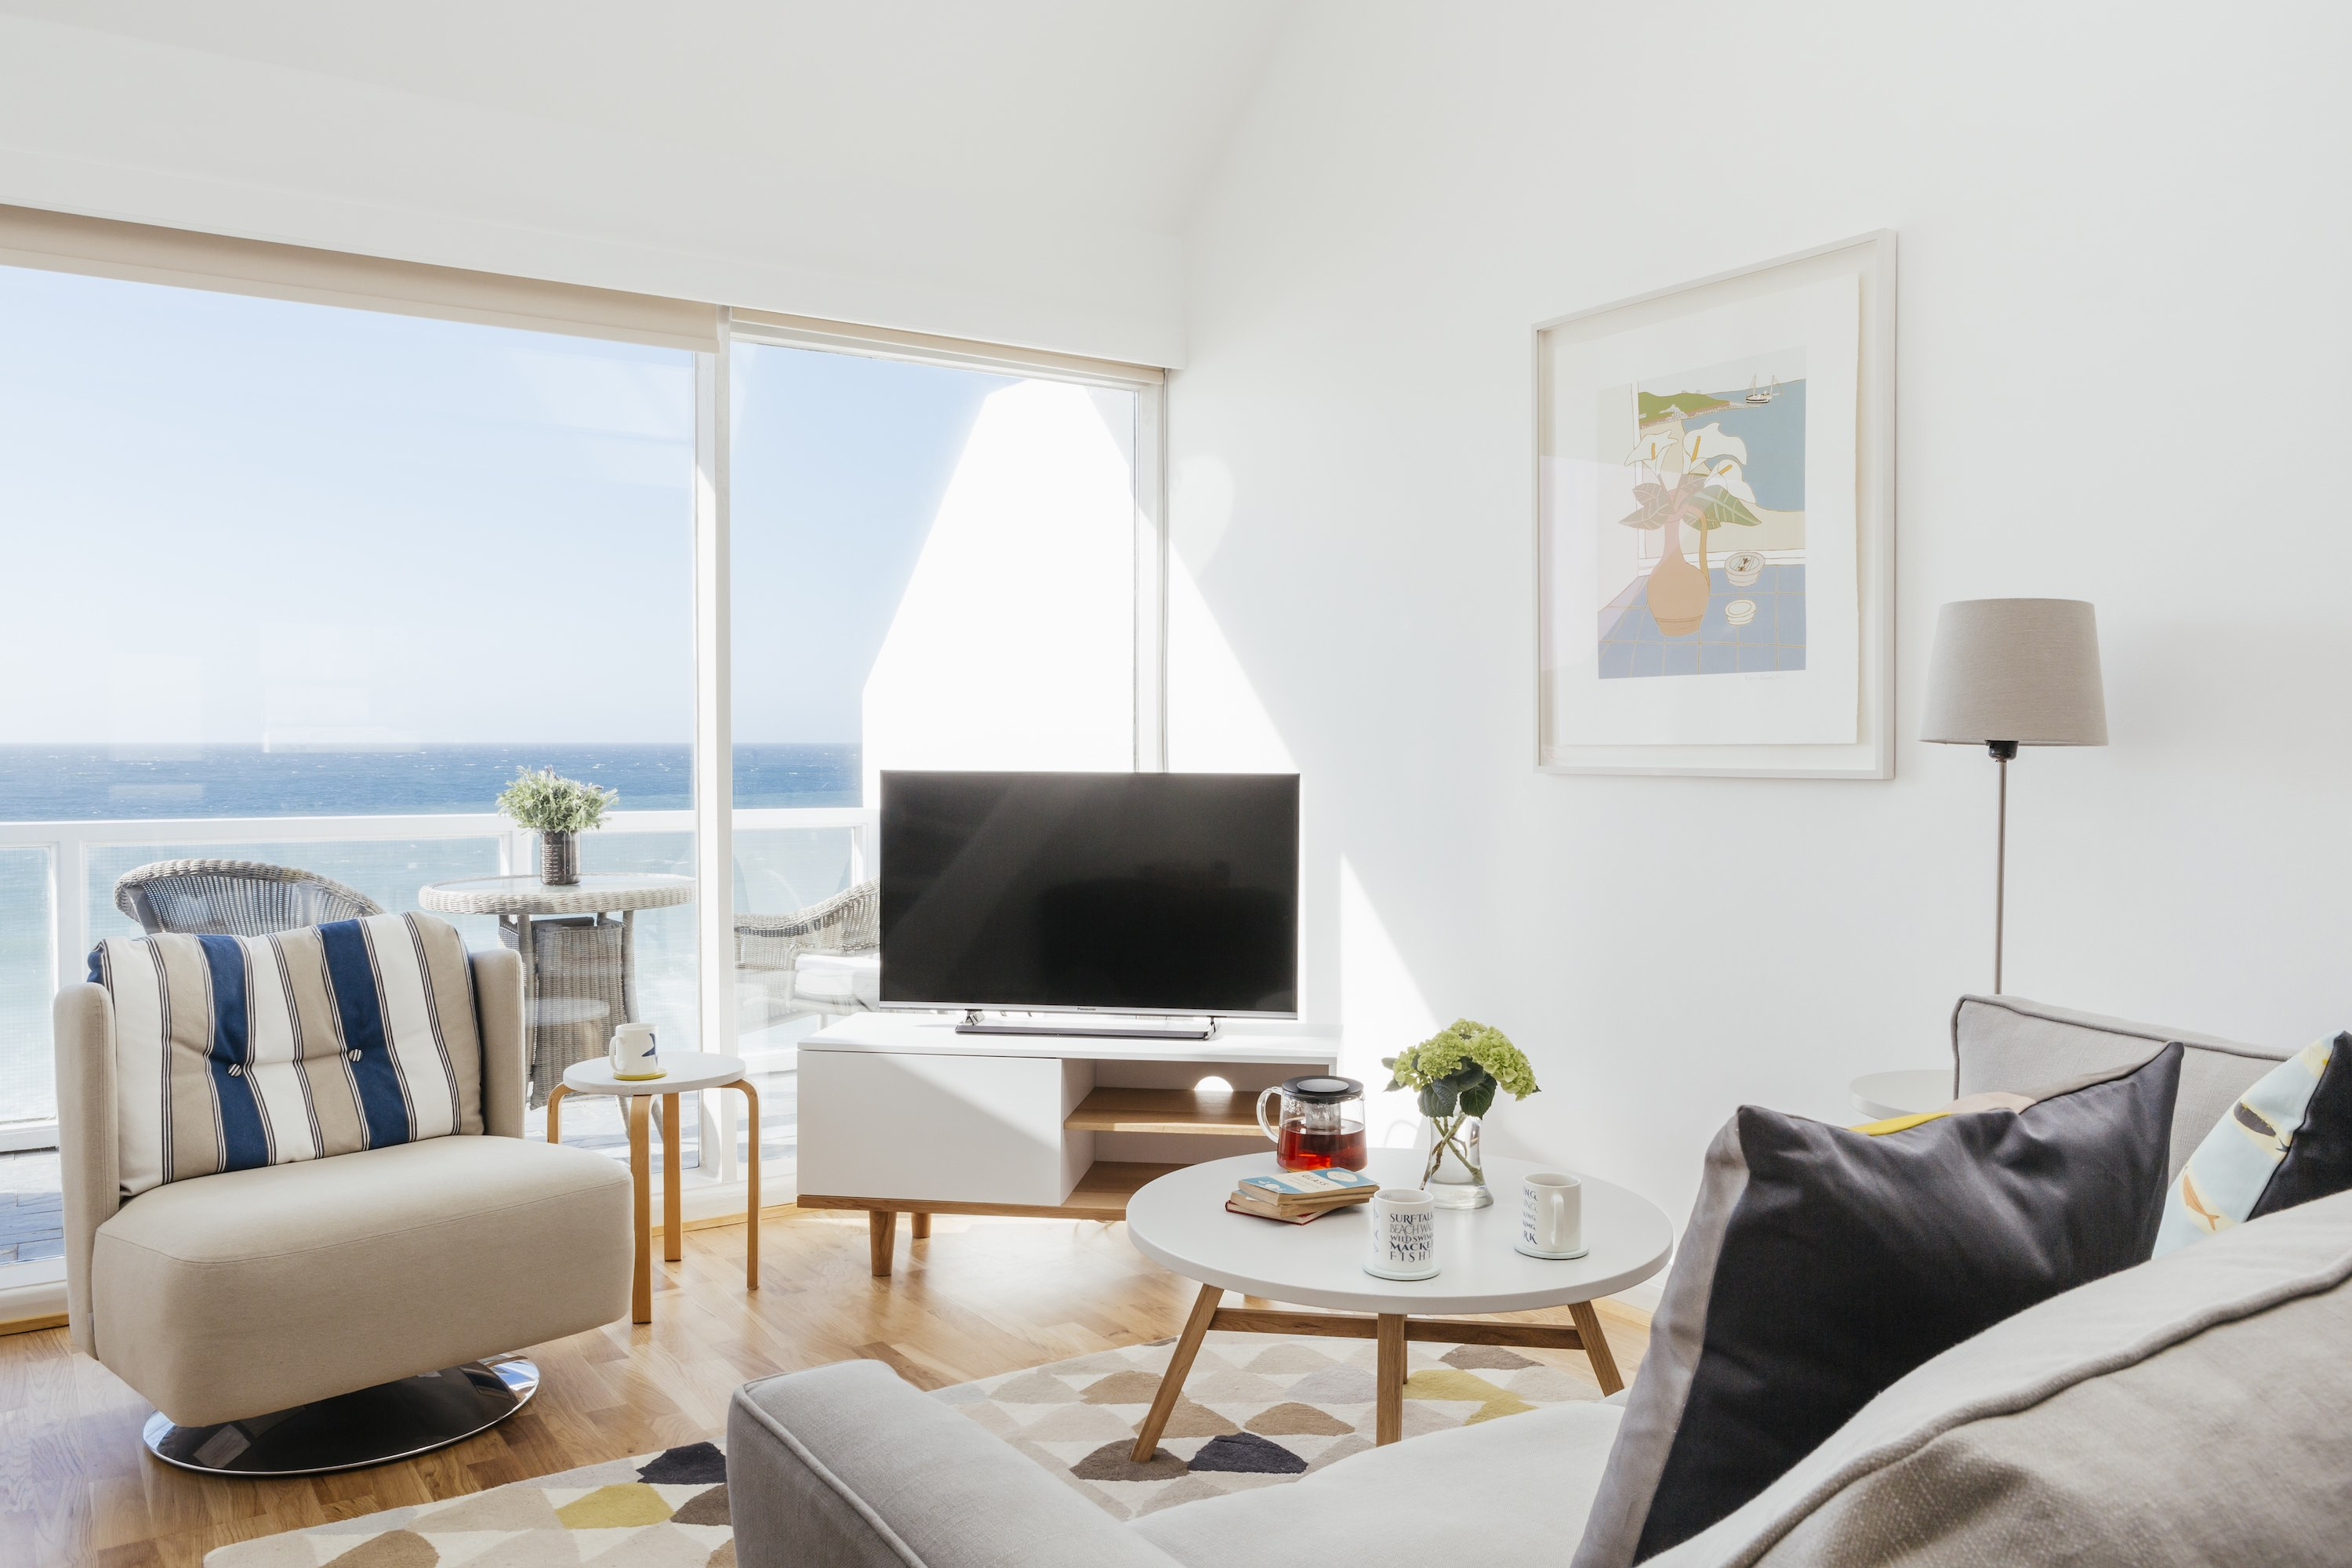 Living area of 22 Piazza St Ives with a view over Porthmeor beach